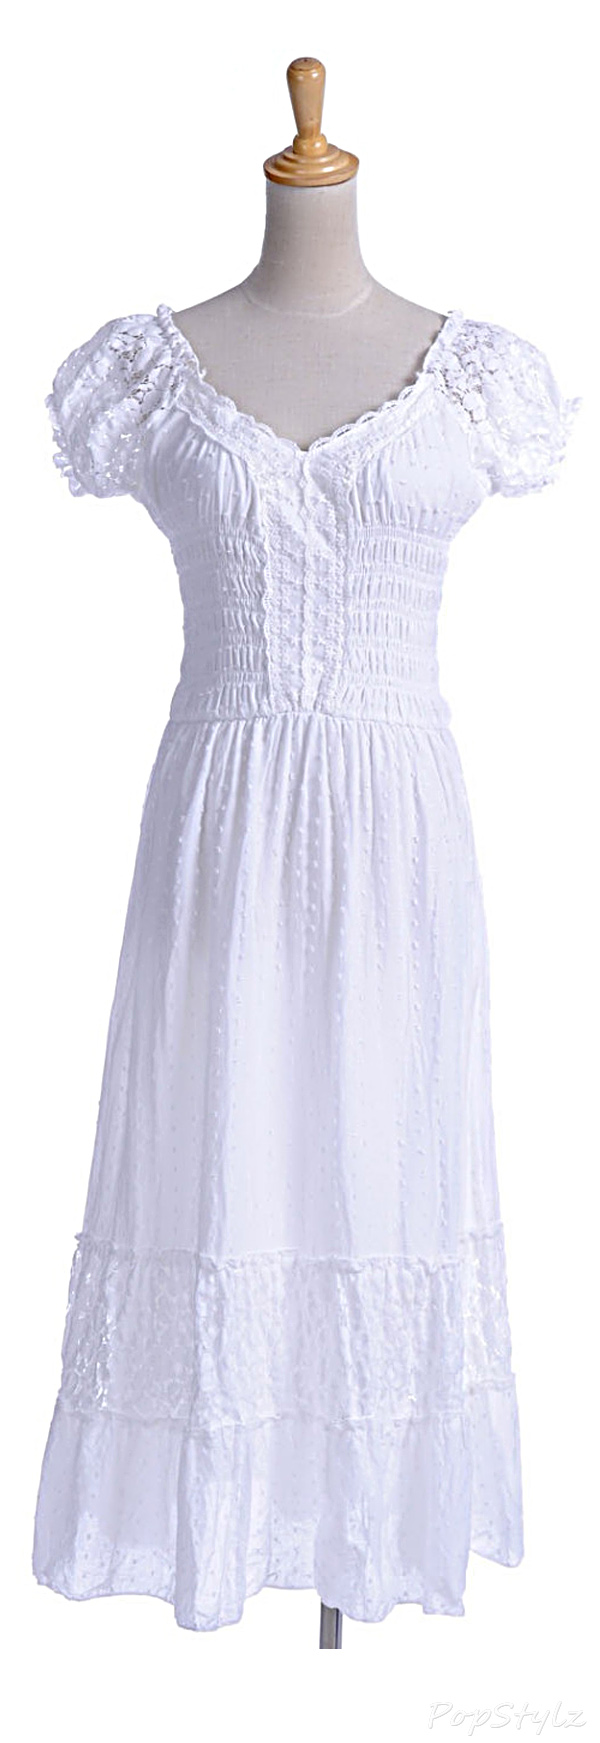 Anna-Kaci Boho Peasant Maiden Lace Trim Dress